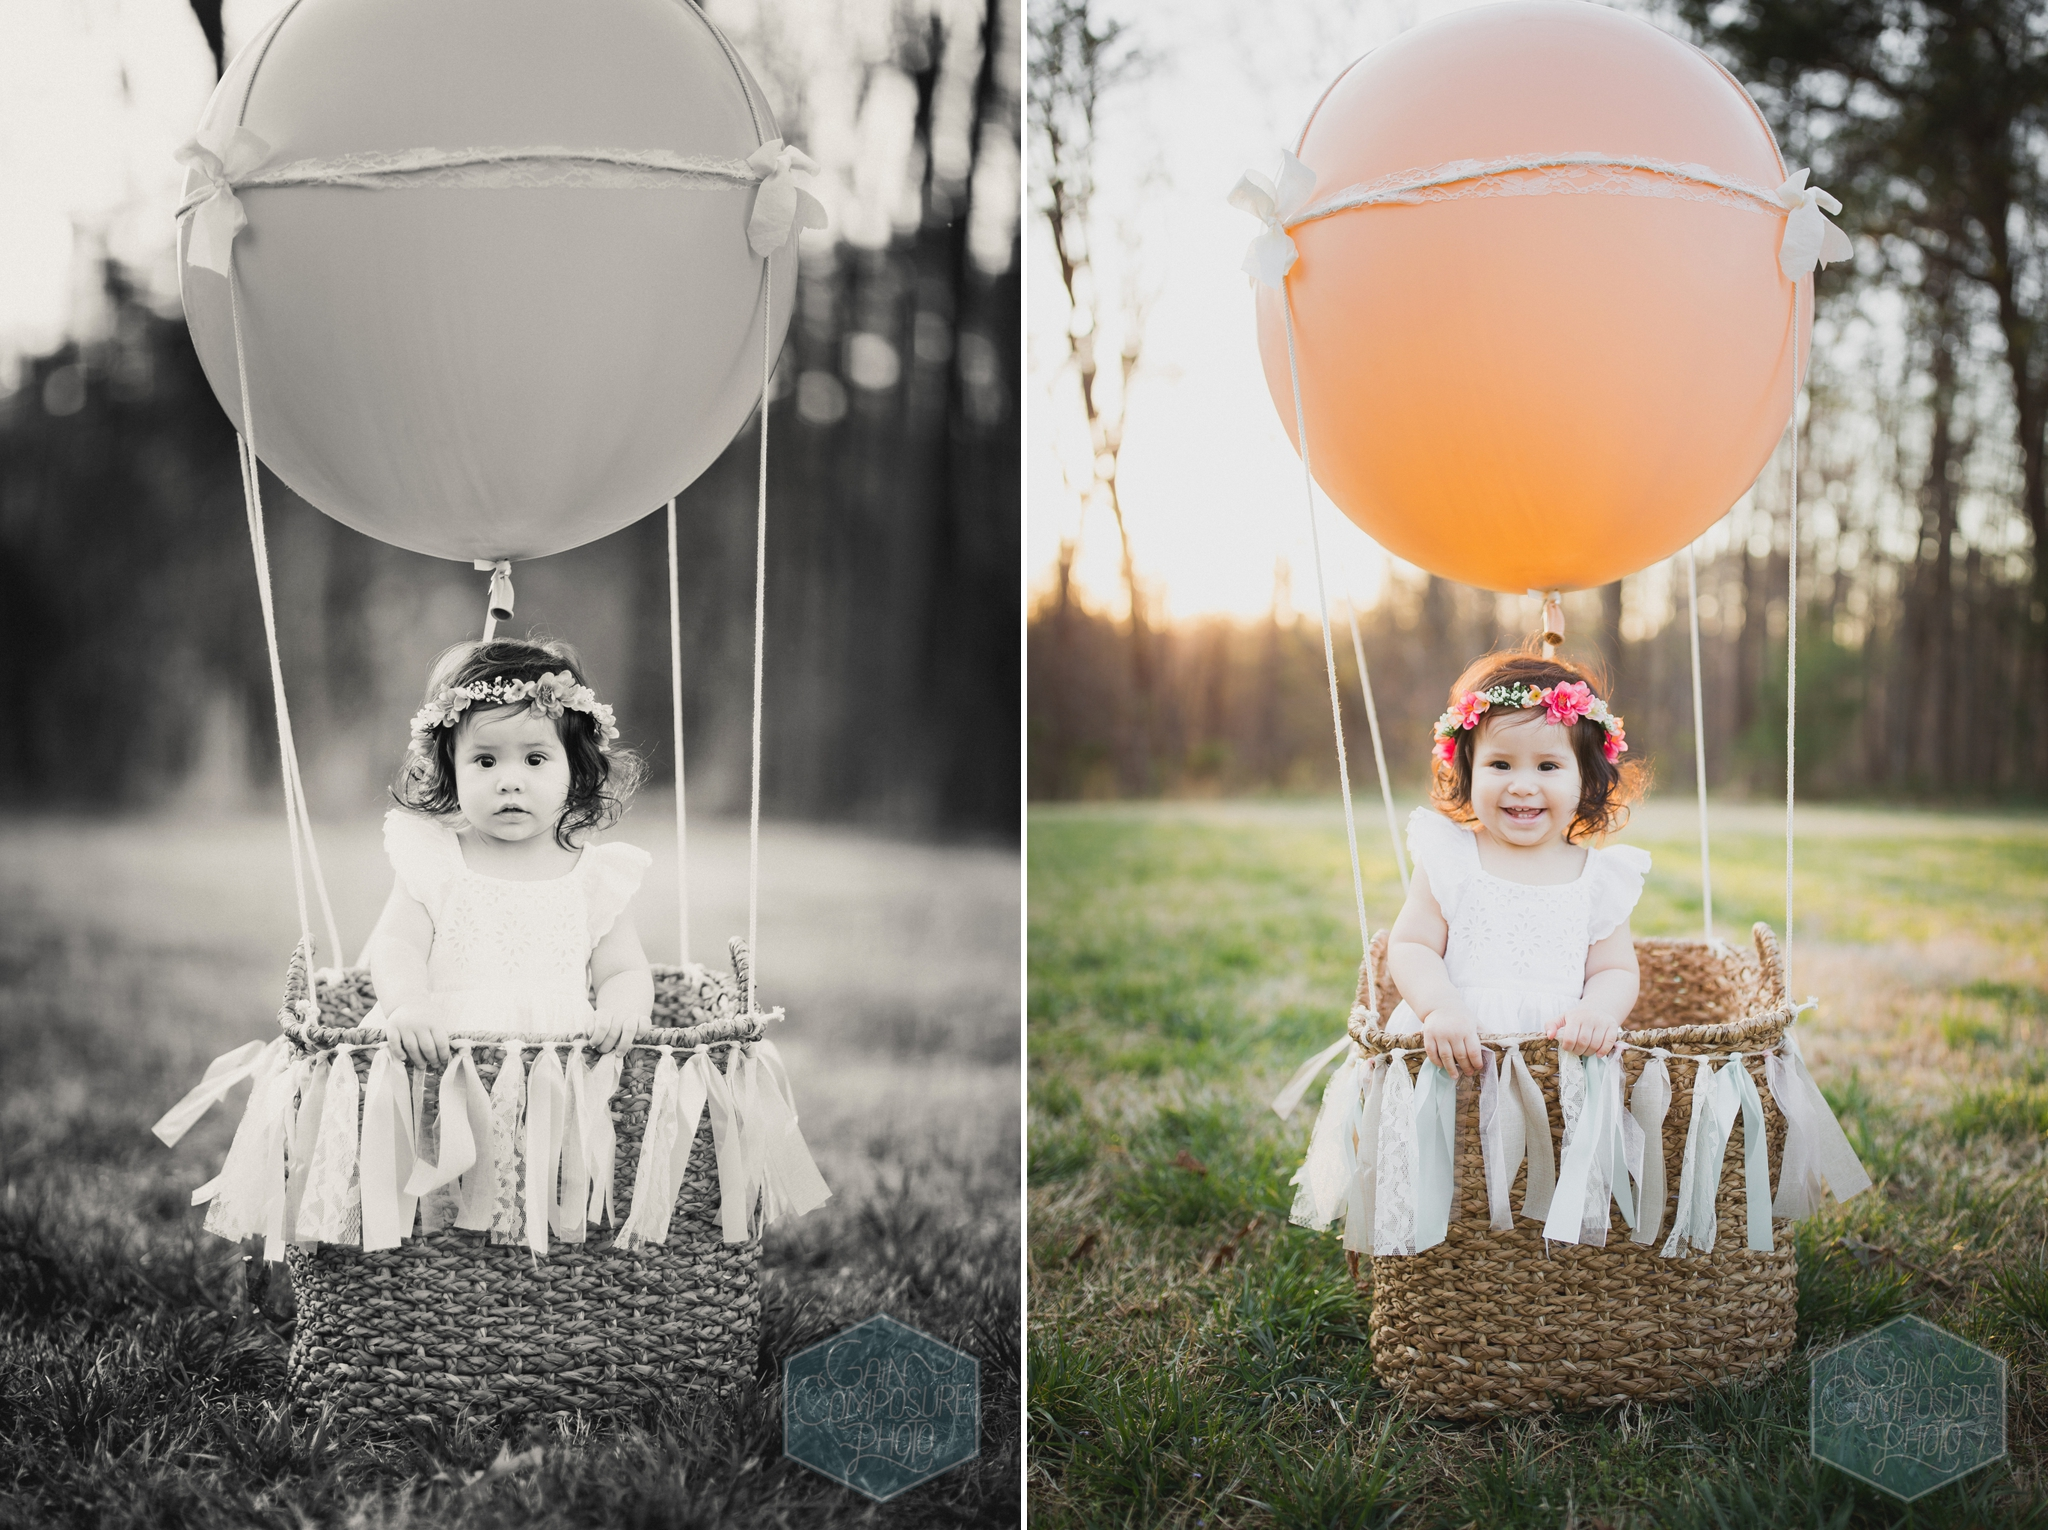 handmade hot air balloon and basket used in childrens portrait session in greensboro